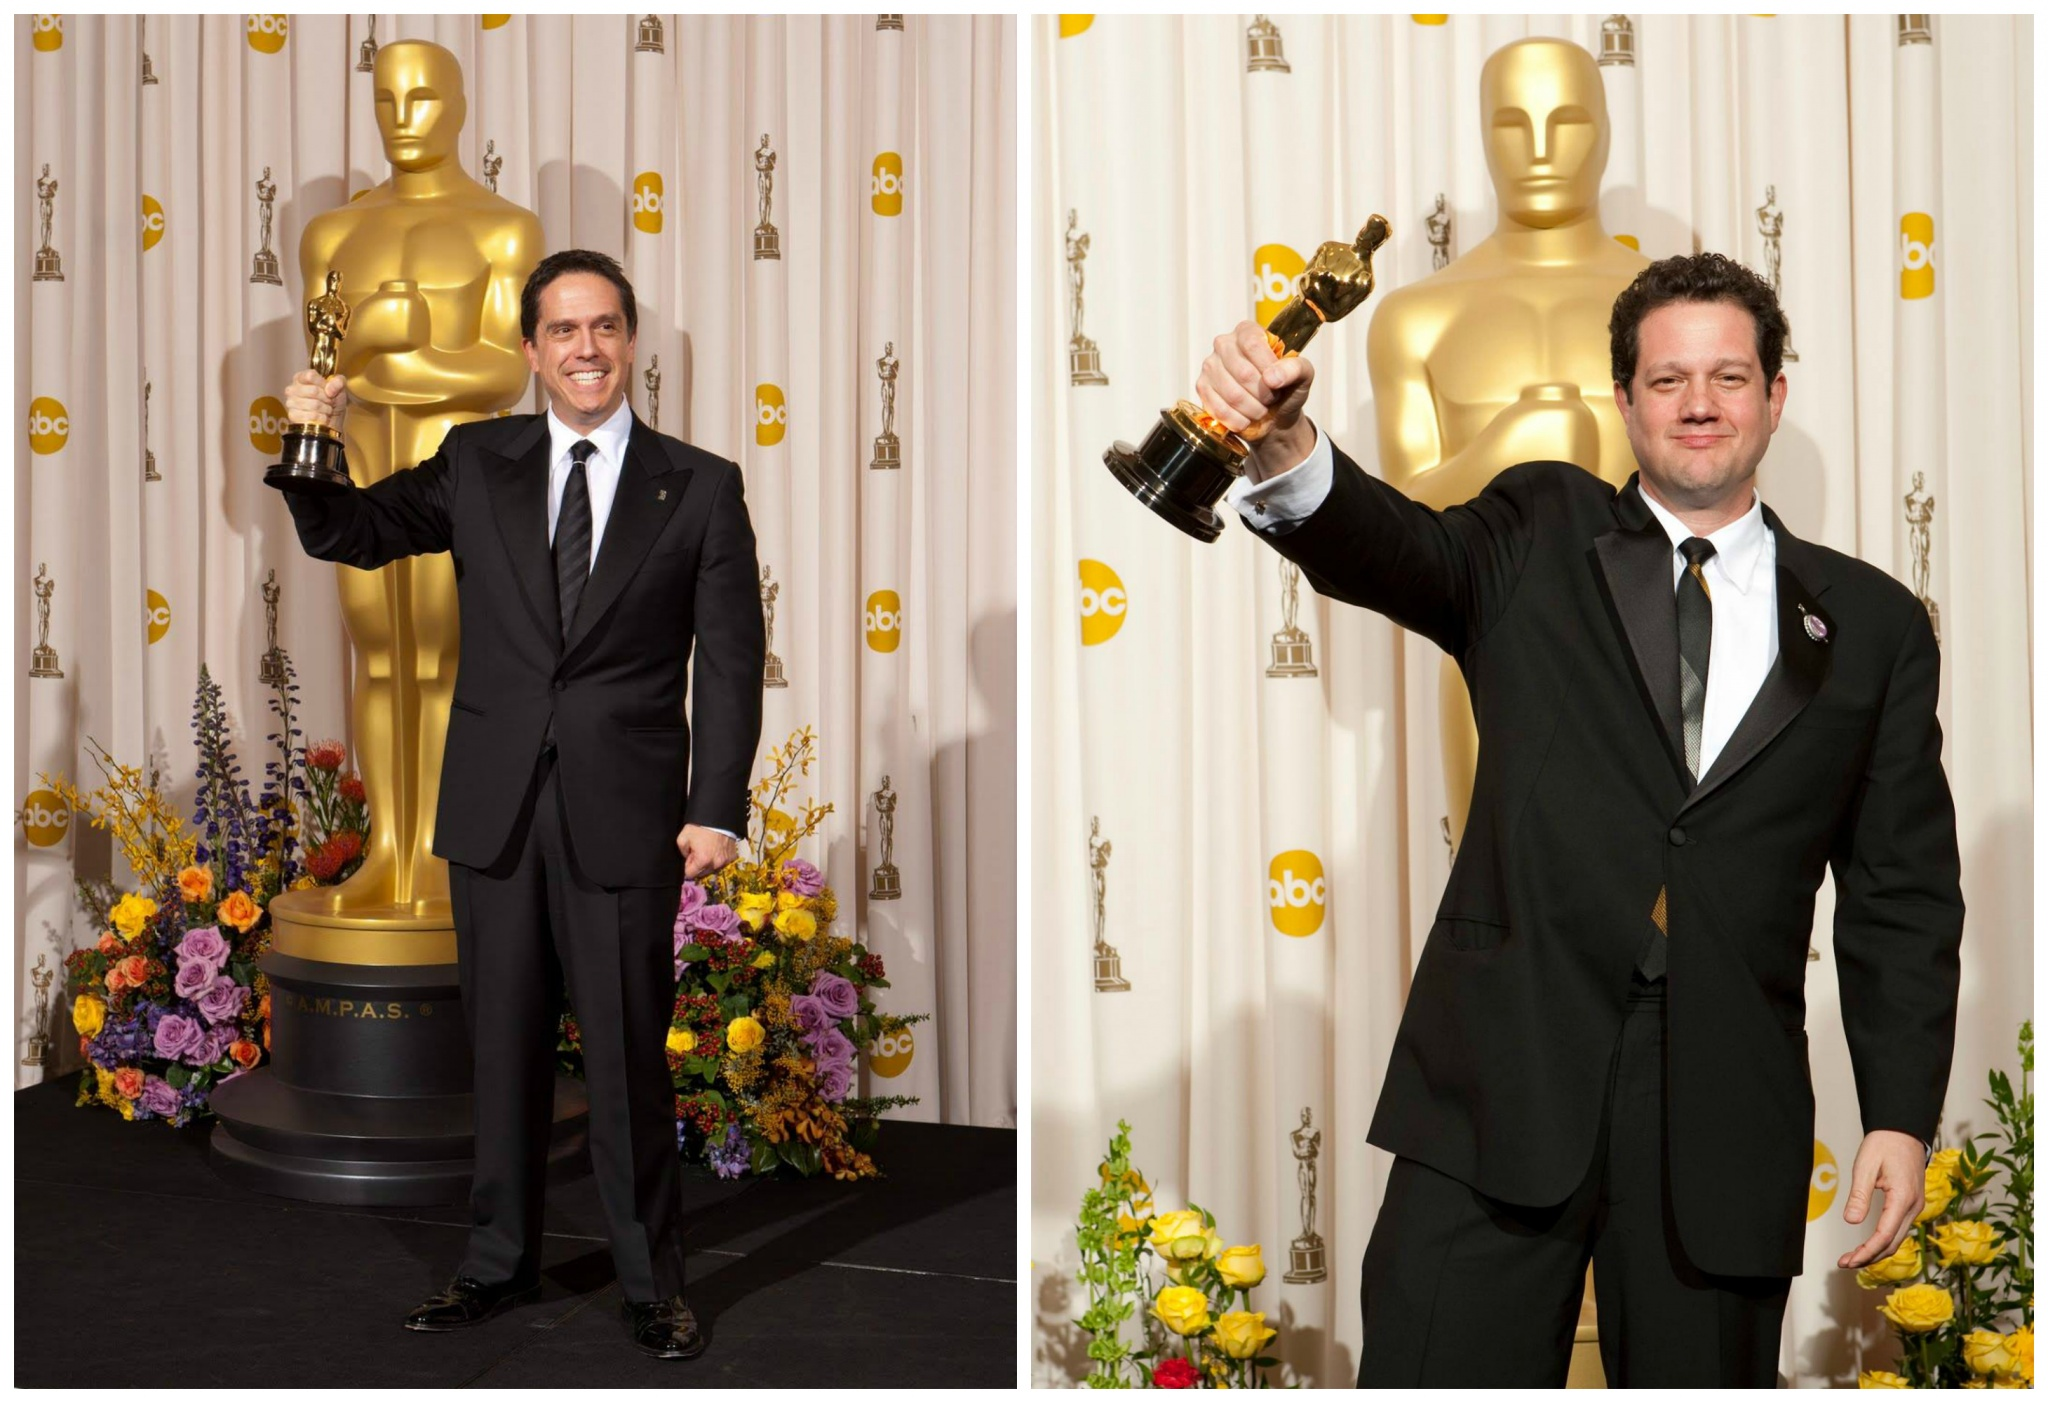 Lee Unkrich and Composer Michael Giacchino